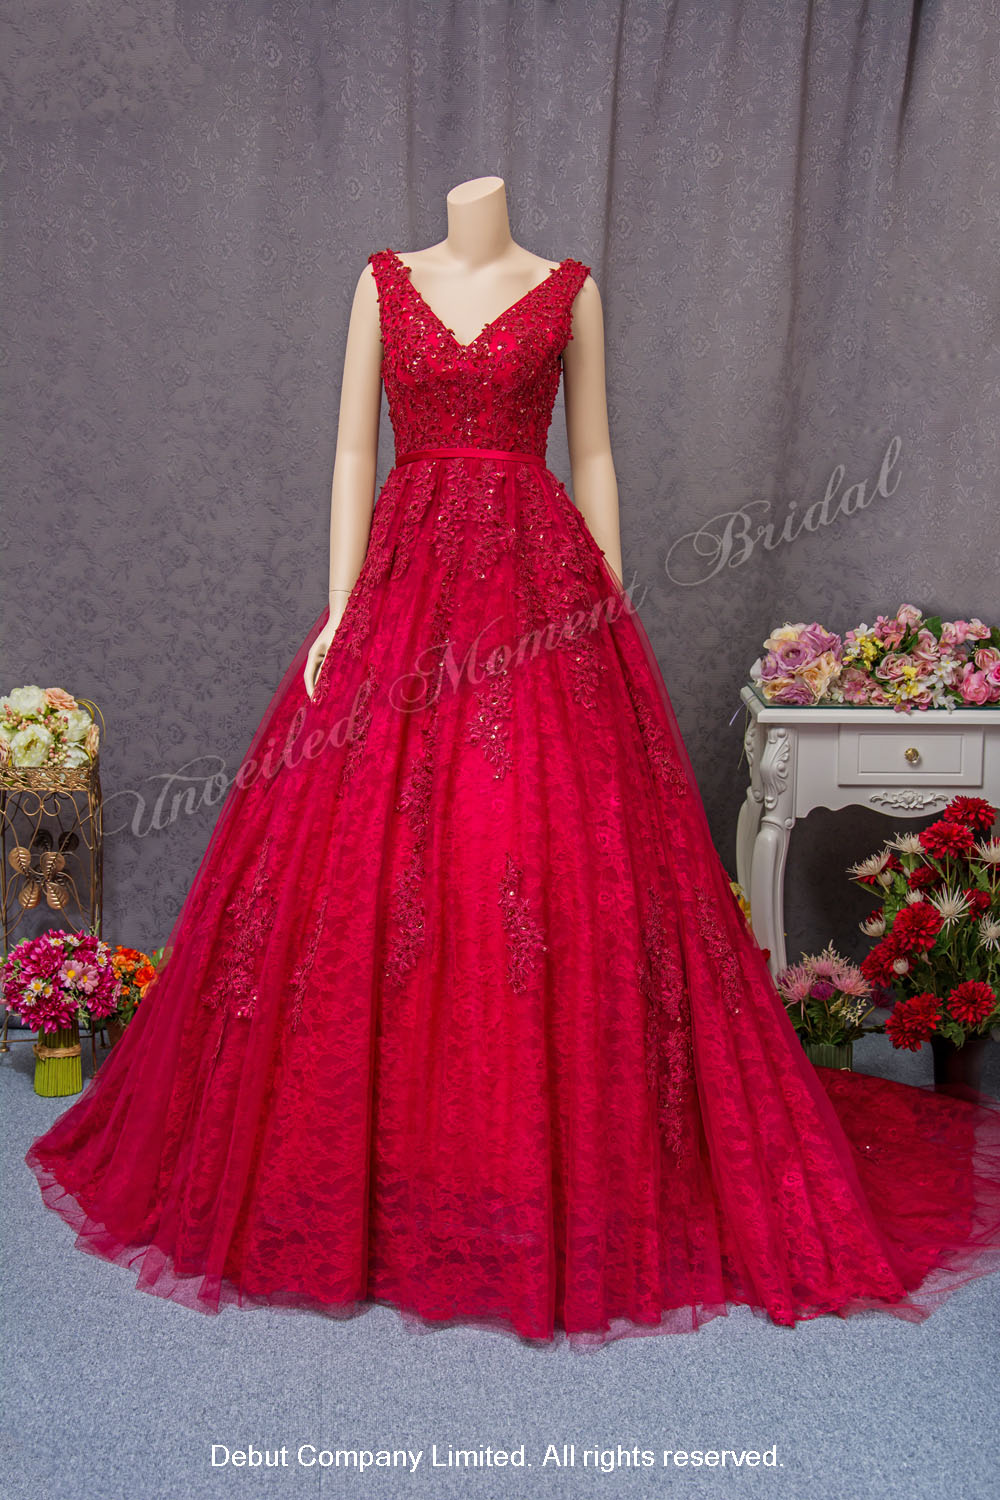 Sleeveless, deep-V lace evening gown with beadings and a court train. Colour: Burgundy. 無袖款, 大V領, 蕾絲釘珠, 長拖尾, 酒紅色 傘裙晩裝